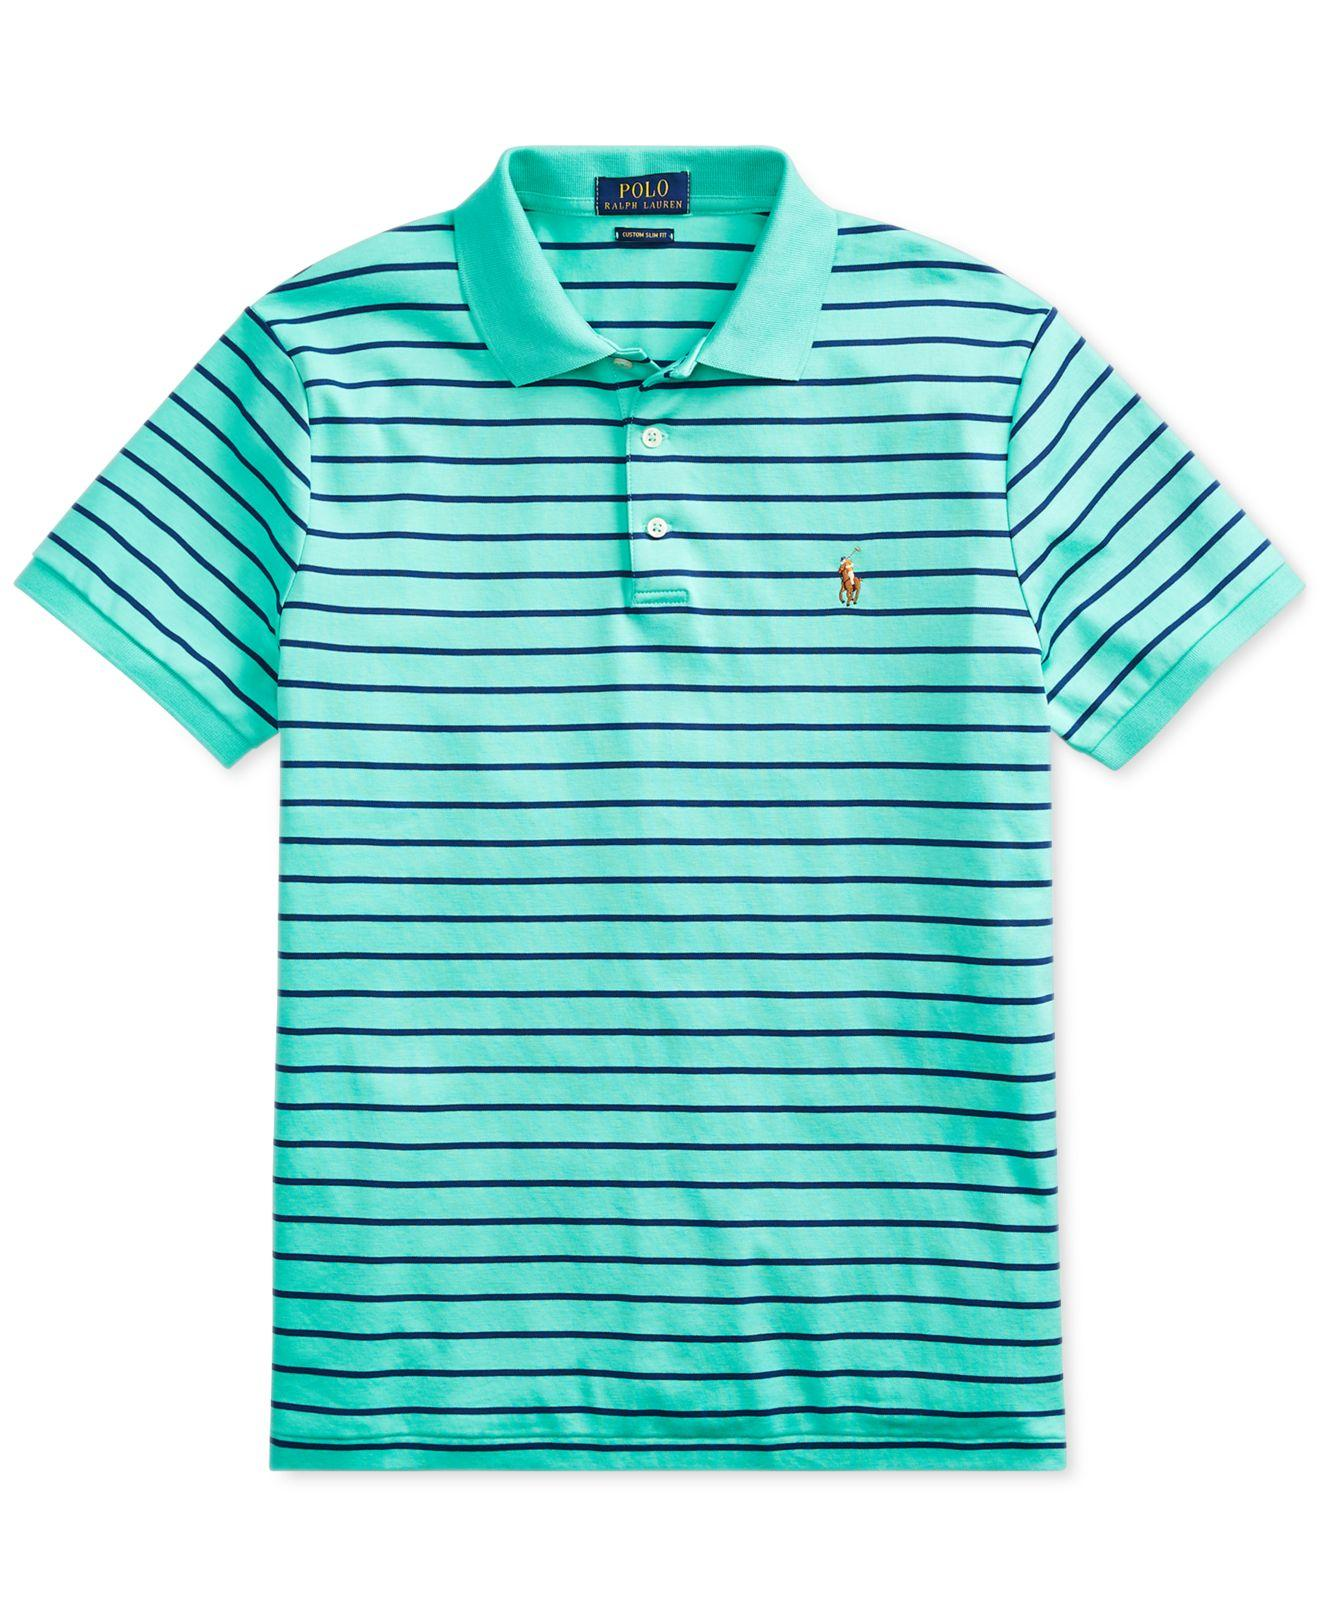 a6aa0a9c Lyst - Polo Ralph Lauren Custom Slim Fit Polo, Created For Macy's in Green  for Men